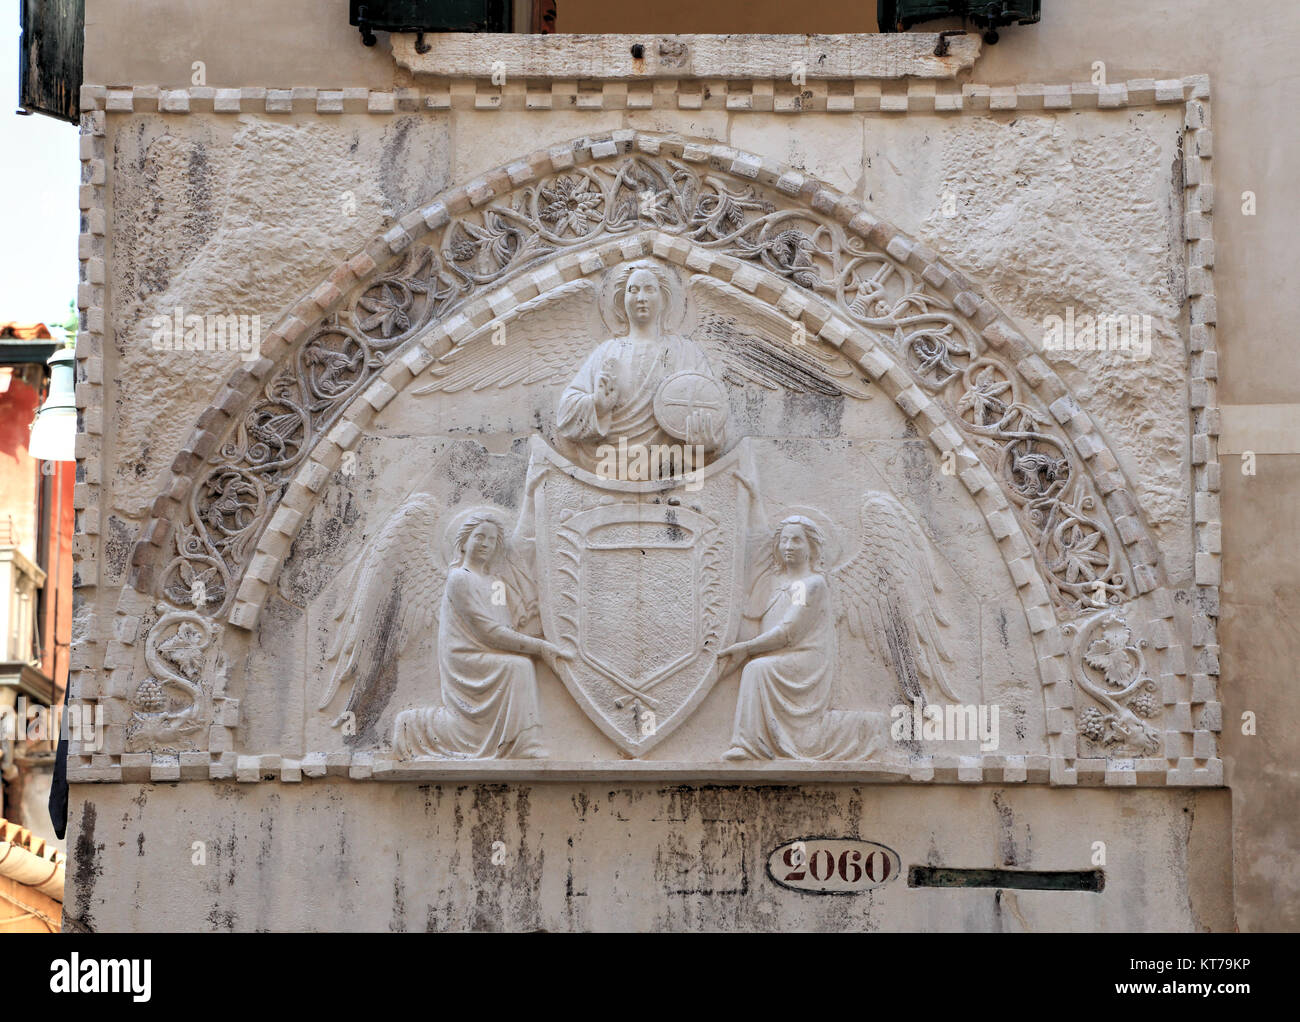 Tympanum bas relief at the water portal of Palazzo Agnusdio - Stock Image